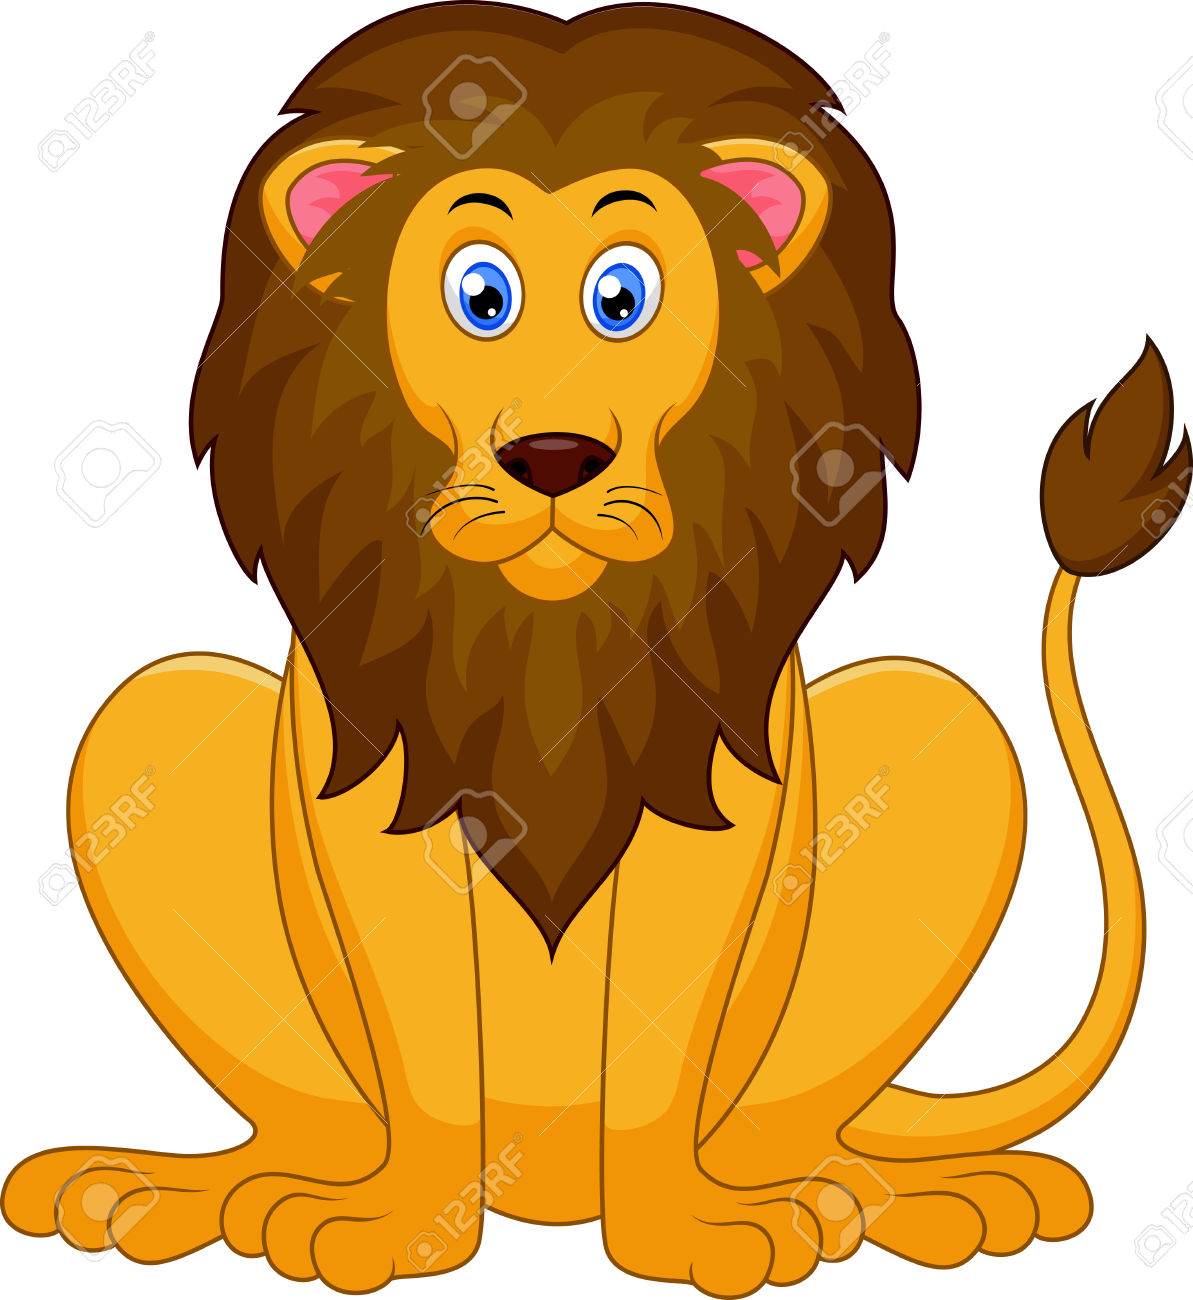 109 Lion Mouth Open Stock Illustrations, Cliparts And Royalty Free.